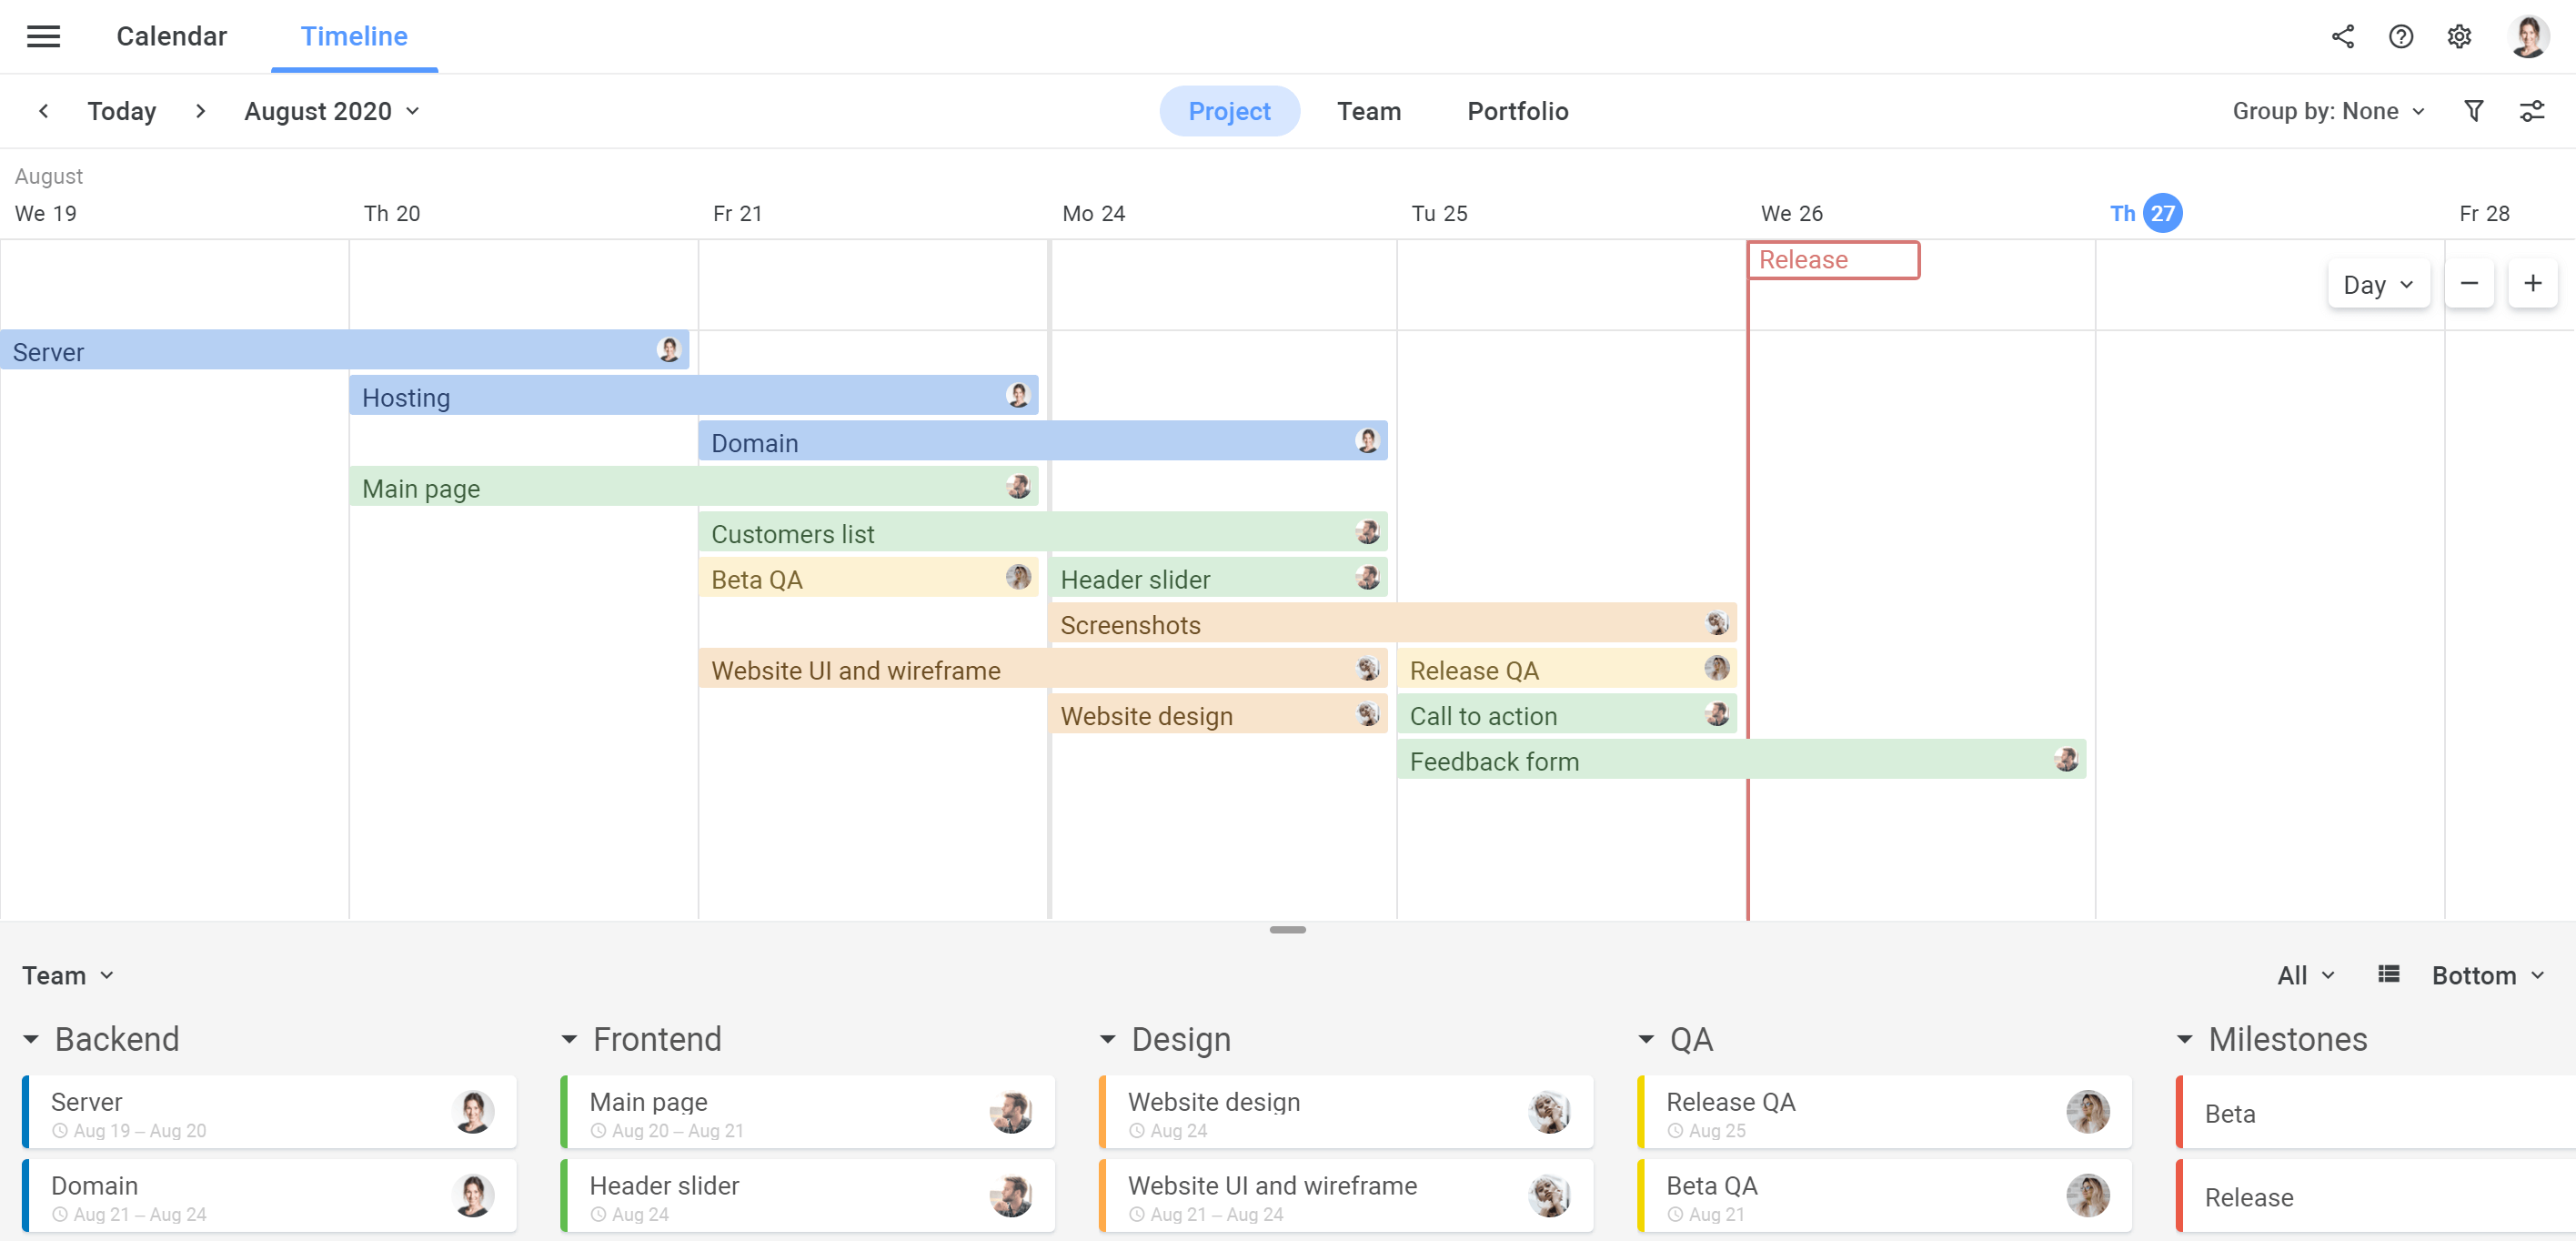 Planyway Getting Started Project Timeline No Lanes